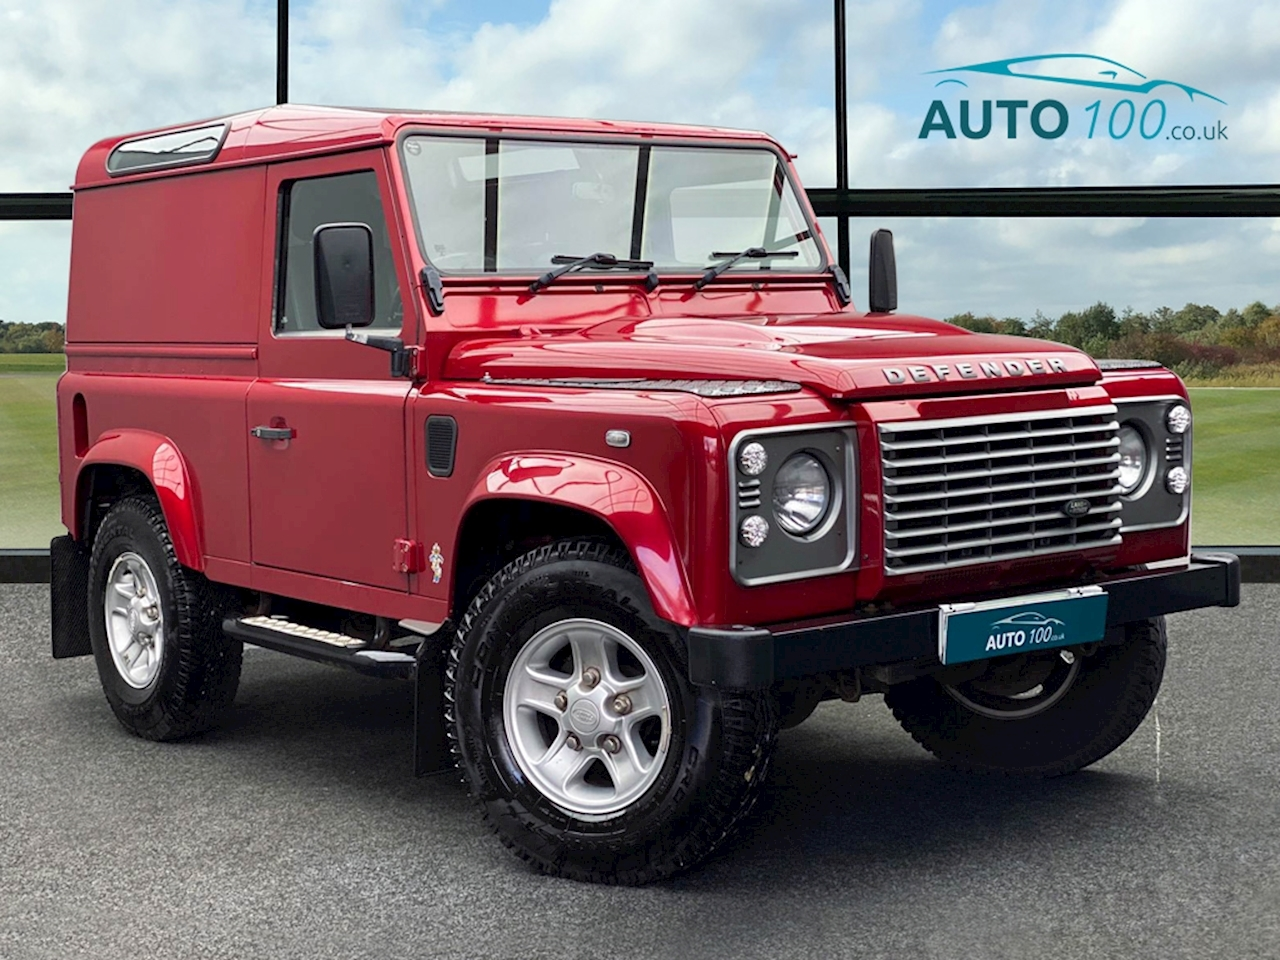 Land Rover Defender 90 XS Hard Top 2.2 Manual Diesel